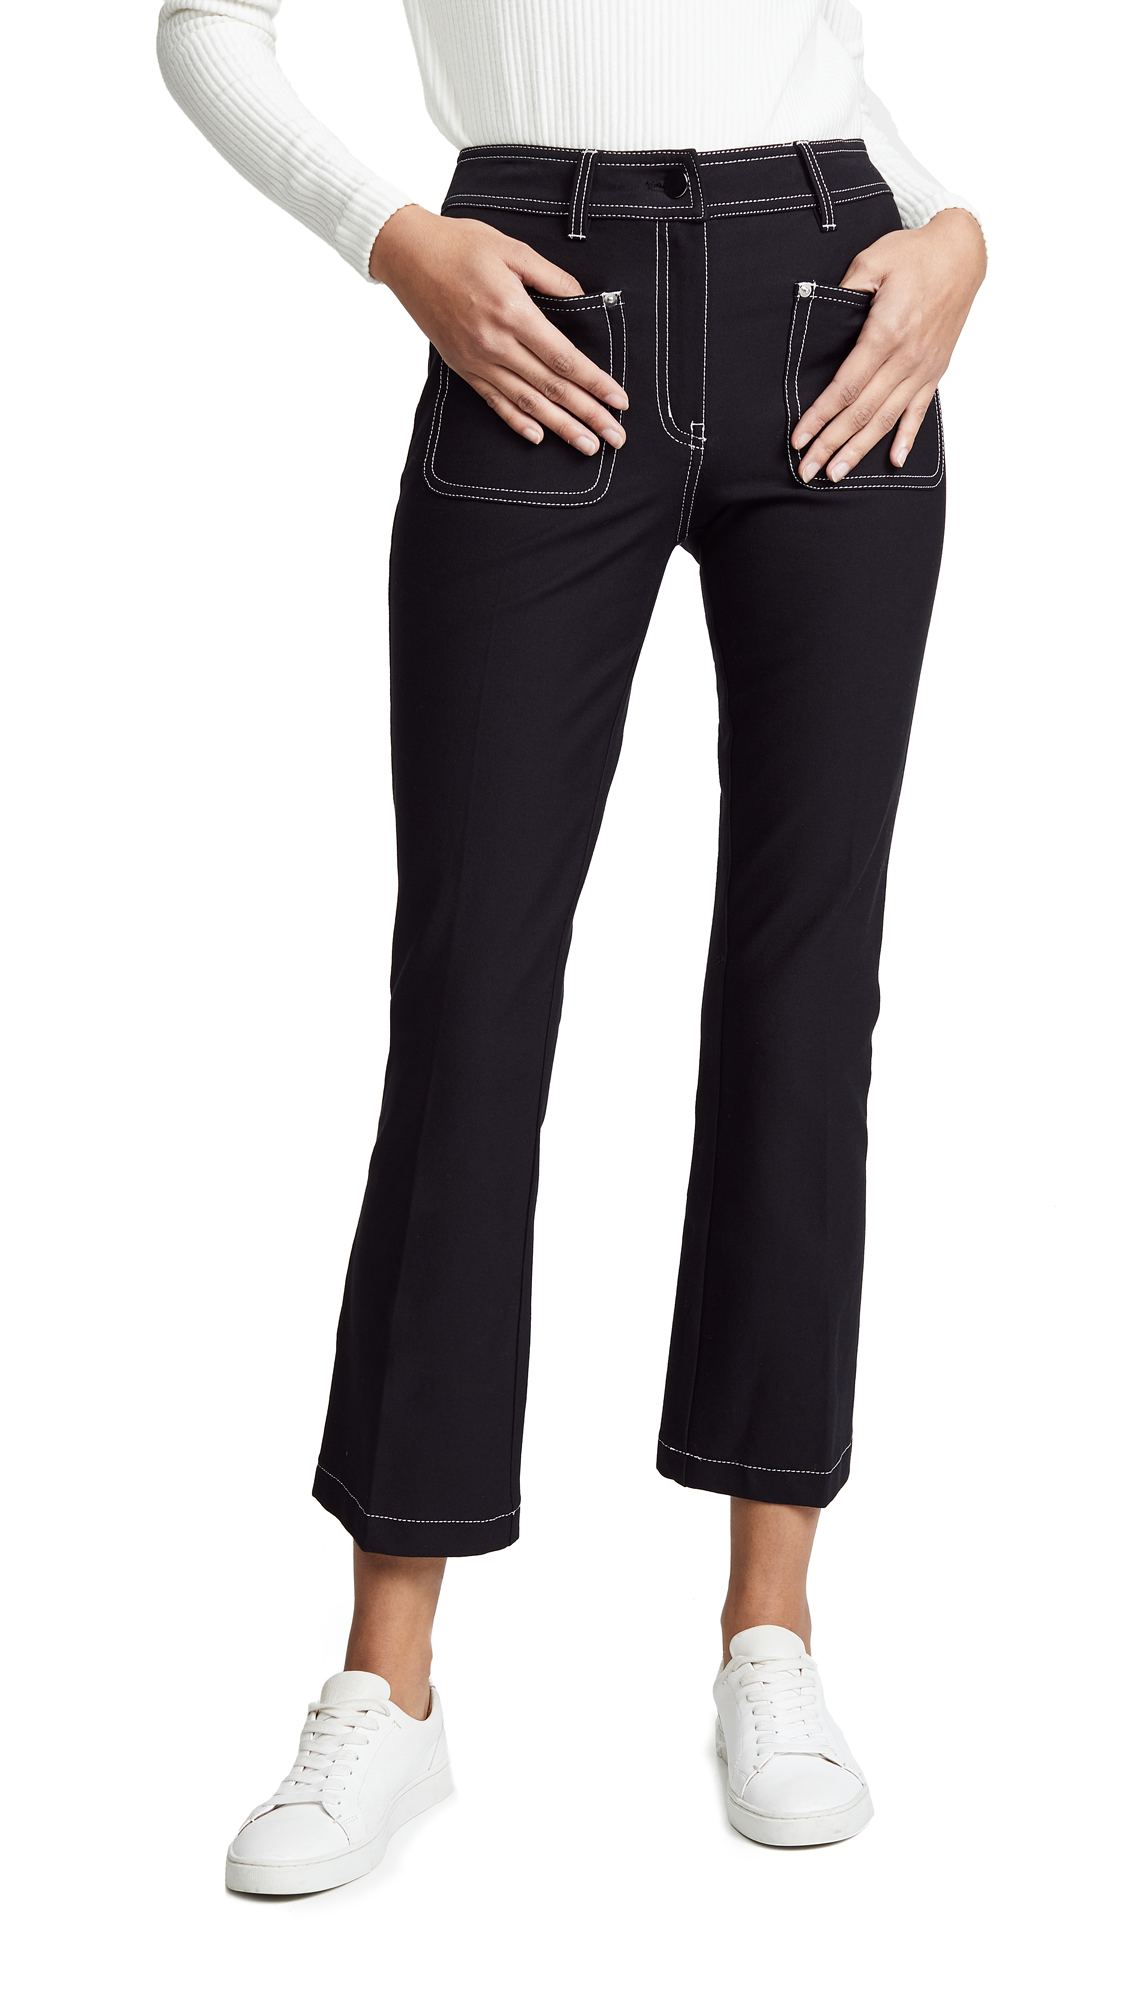 Derek Lam 10 Crosby Cropped Flare Trousers with Patch Pockets - Black